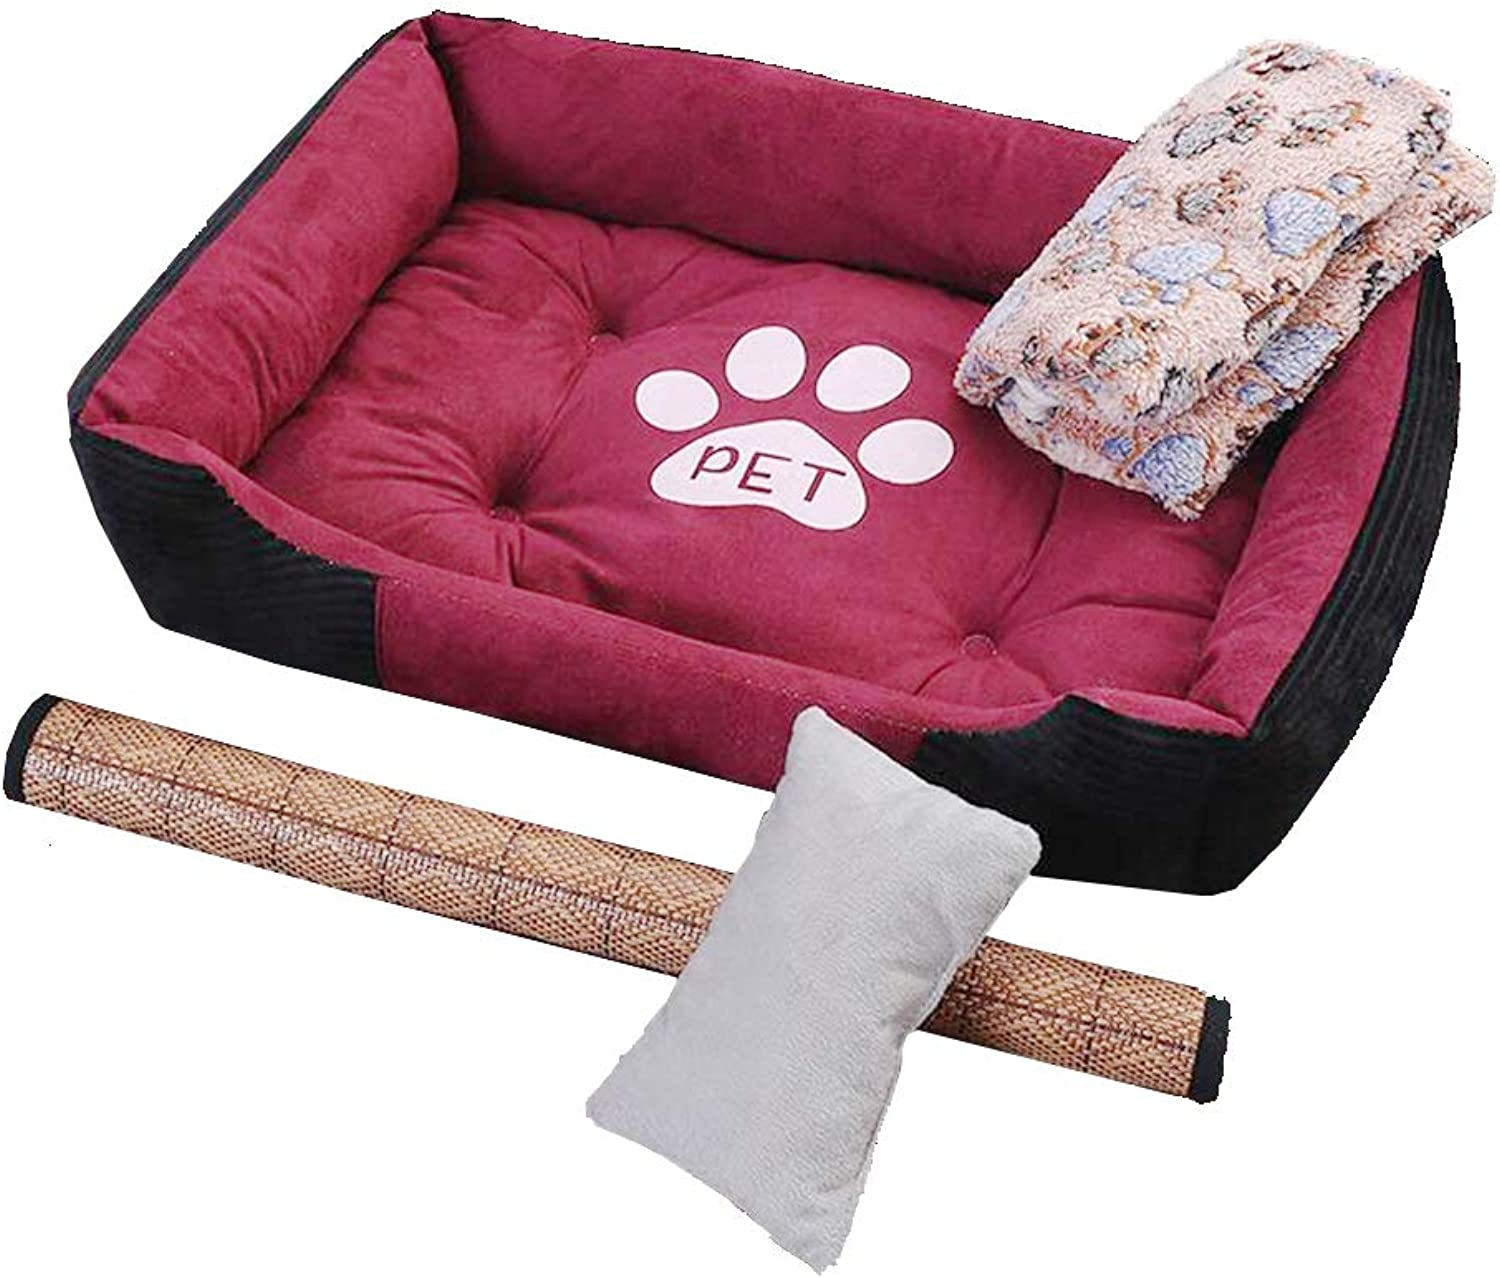 90  70Cm, Dog Pet Mat, Large and MediumSized Summer Nest, Small Dog Four Seasons Universal Kennel (Red) @ Y.T